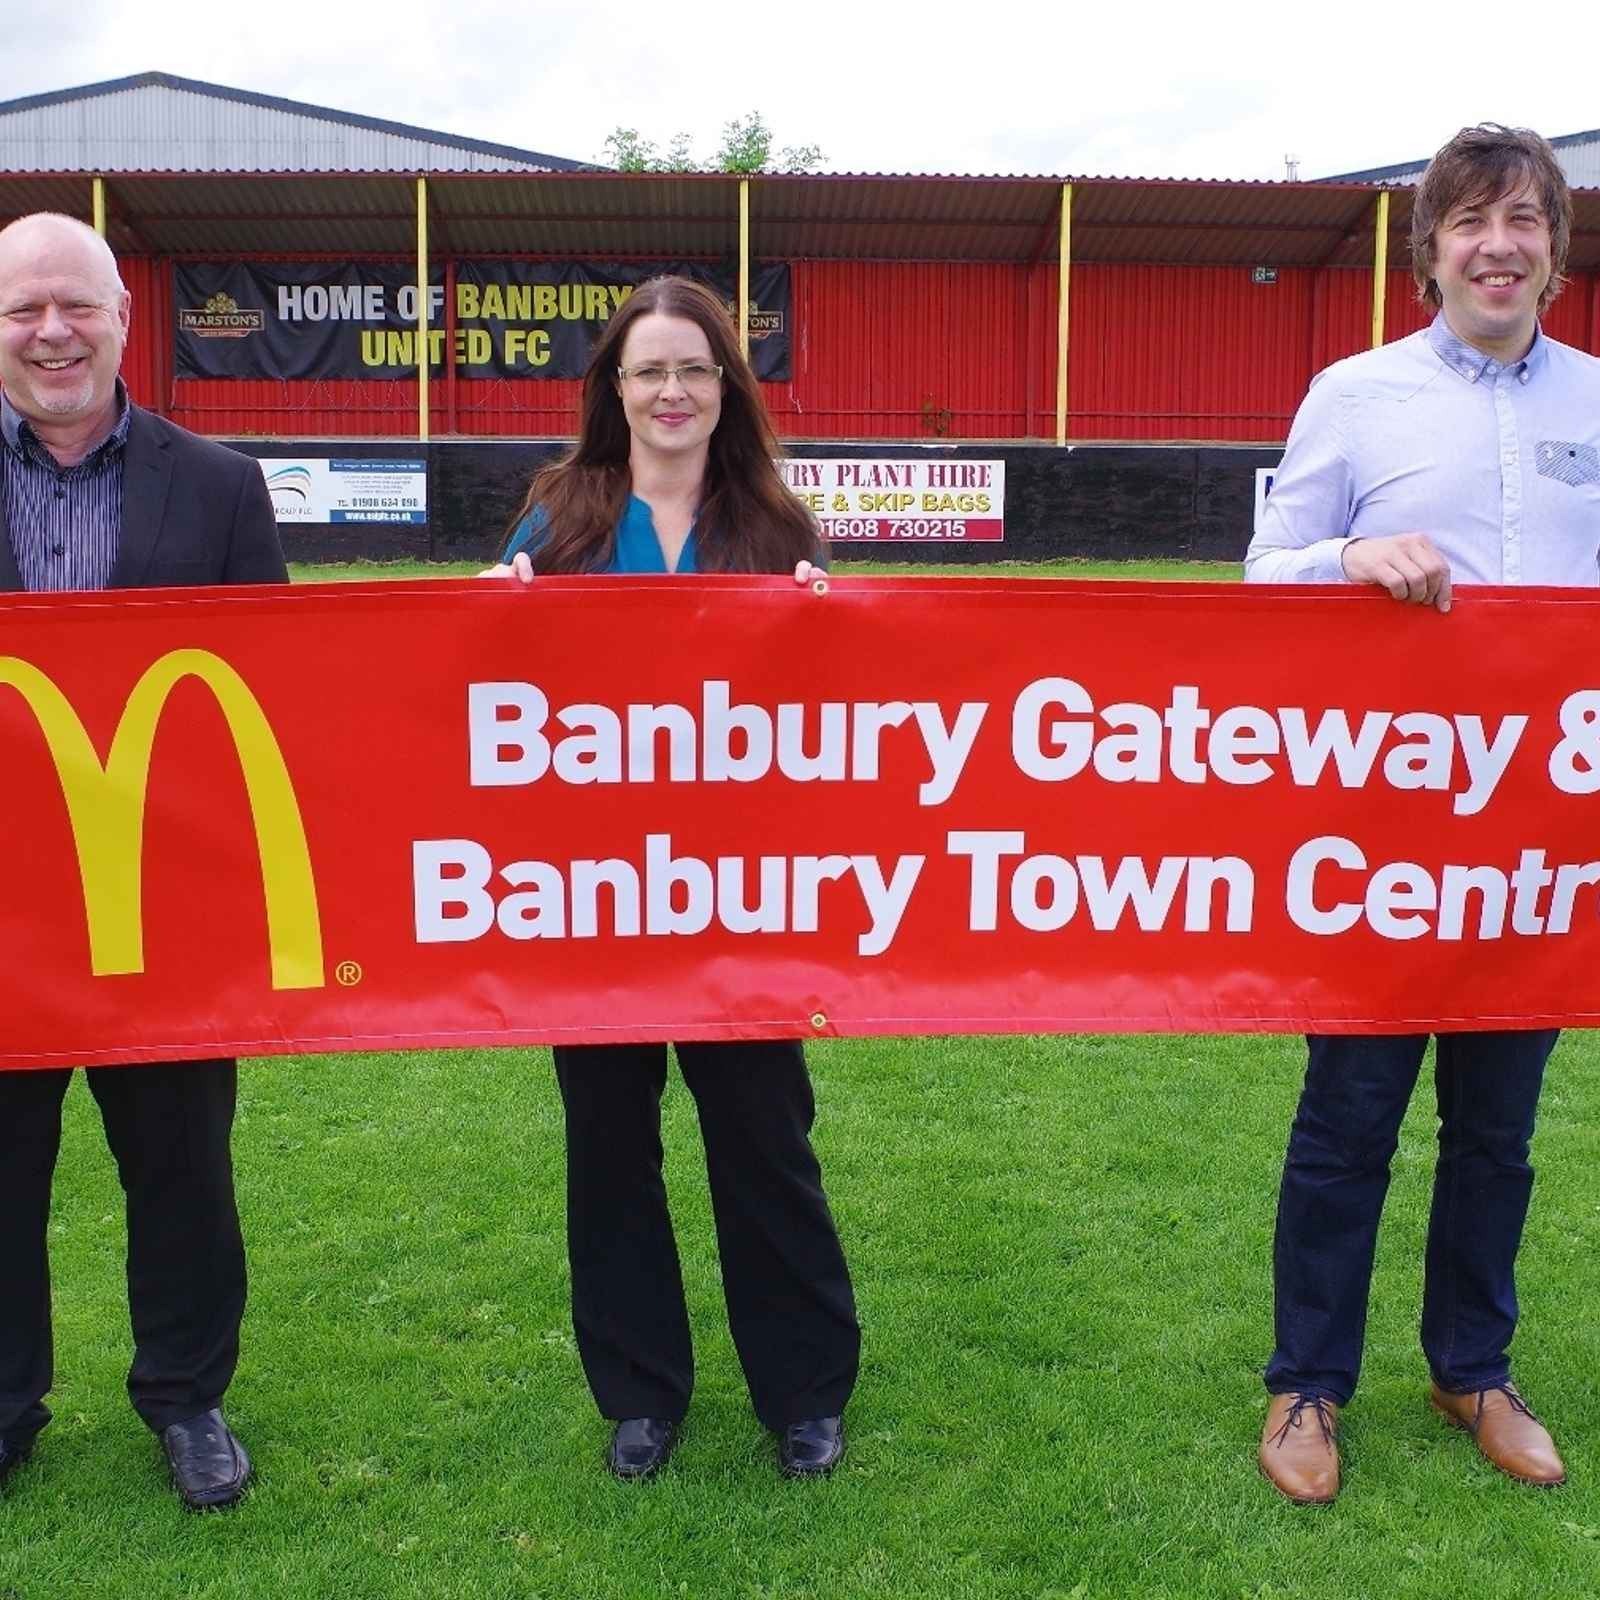 The Golden Arches join the Red and Gold Army in Sponsor Partnership